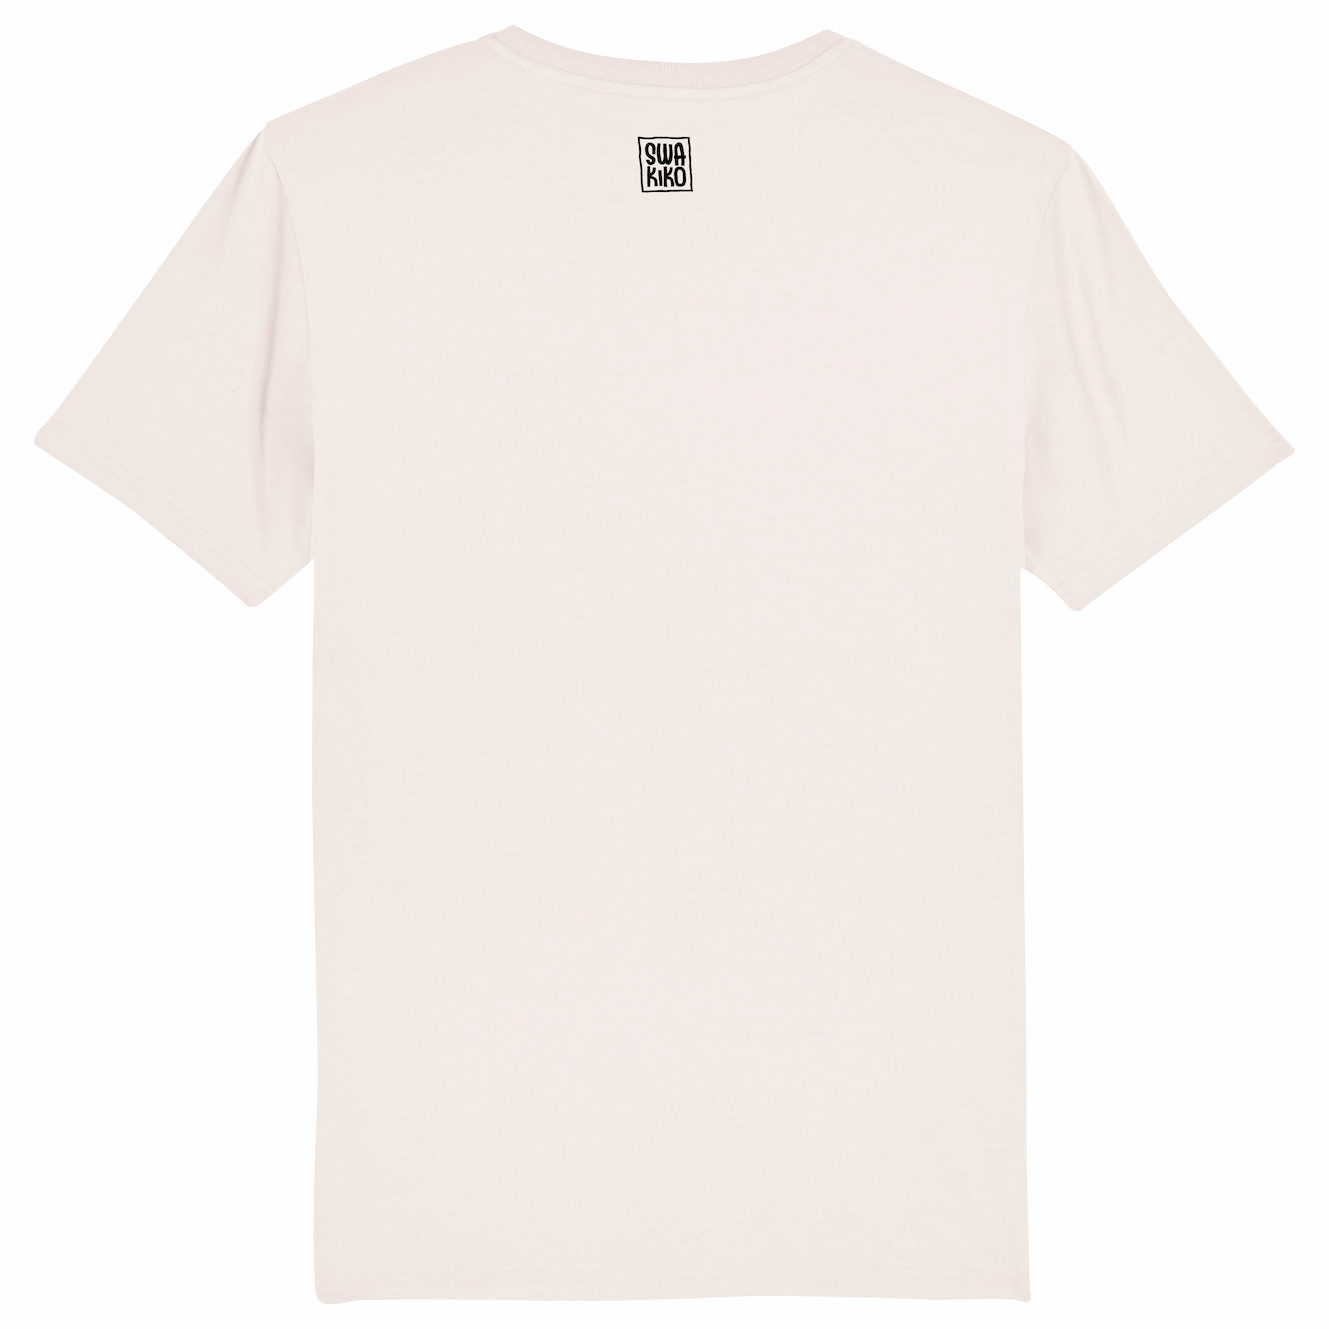 Logo SWAKIKO, Surf t-shirt men